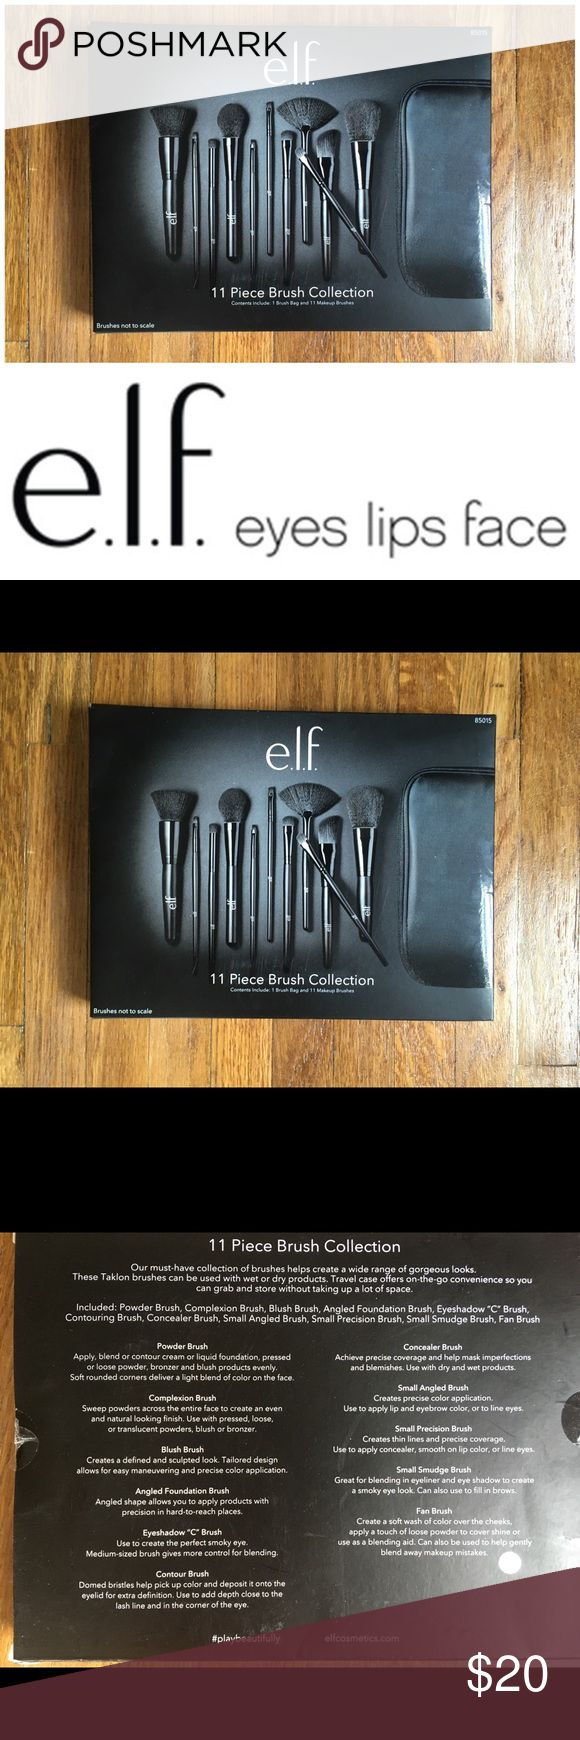 New Unopened ELF 11-Piece Brush Set New & Unopened, ELF 11-piece brush set. I love these brushes! I put together my favorites packages for my clients, and often have extra products that I sell on here! I'm open to reasonable offers, especially if you're bundling with other items - you'll pay the same in shipping if you buy one or multiple items from my closet. I give a free gift with every purchase! All the funds go to the non-profit organization I'm founding. Check back often as I post new…